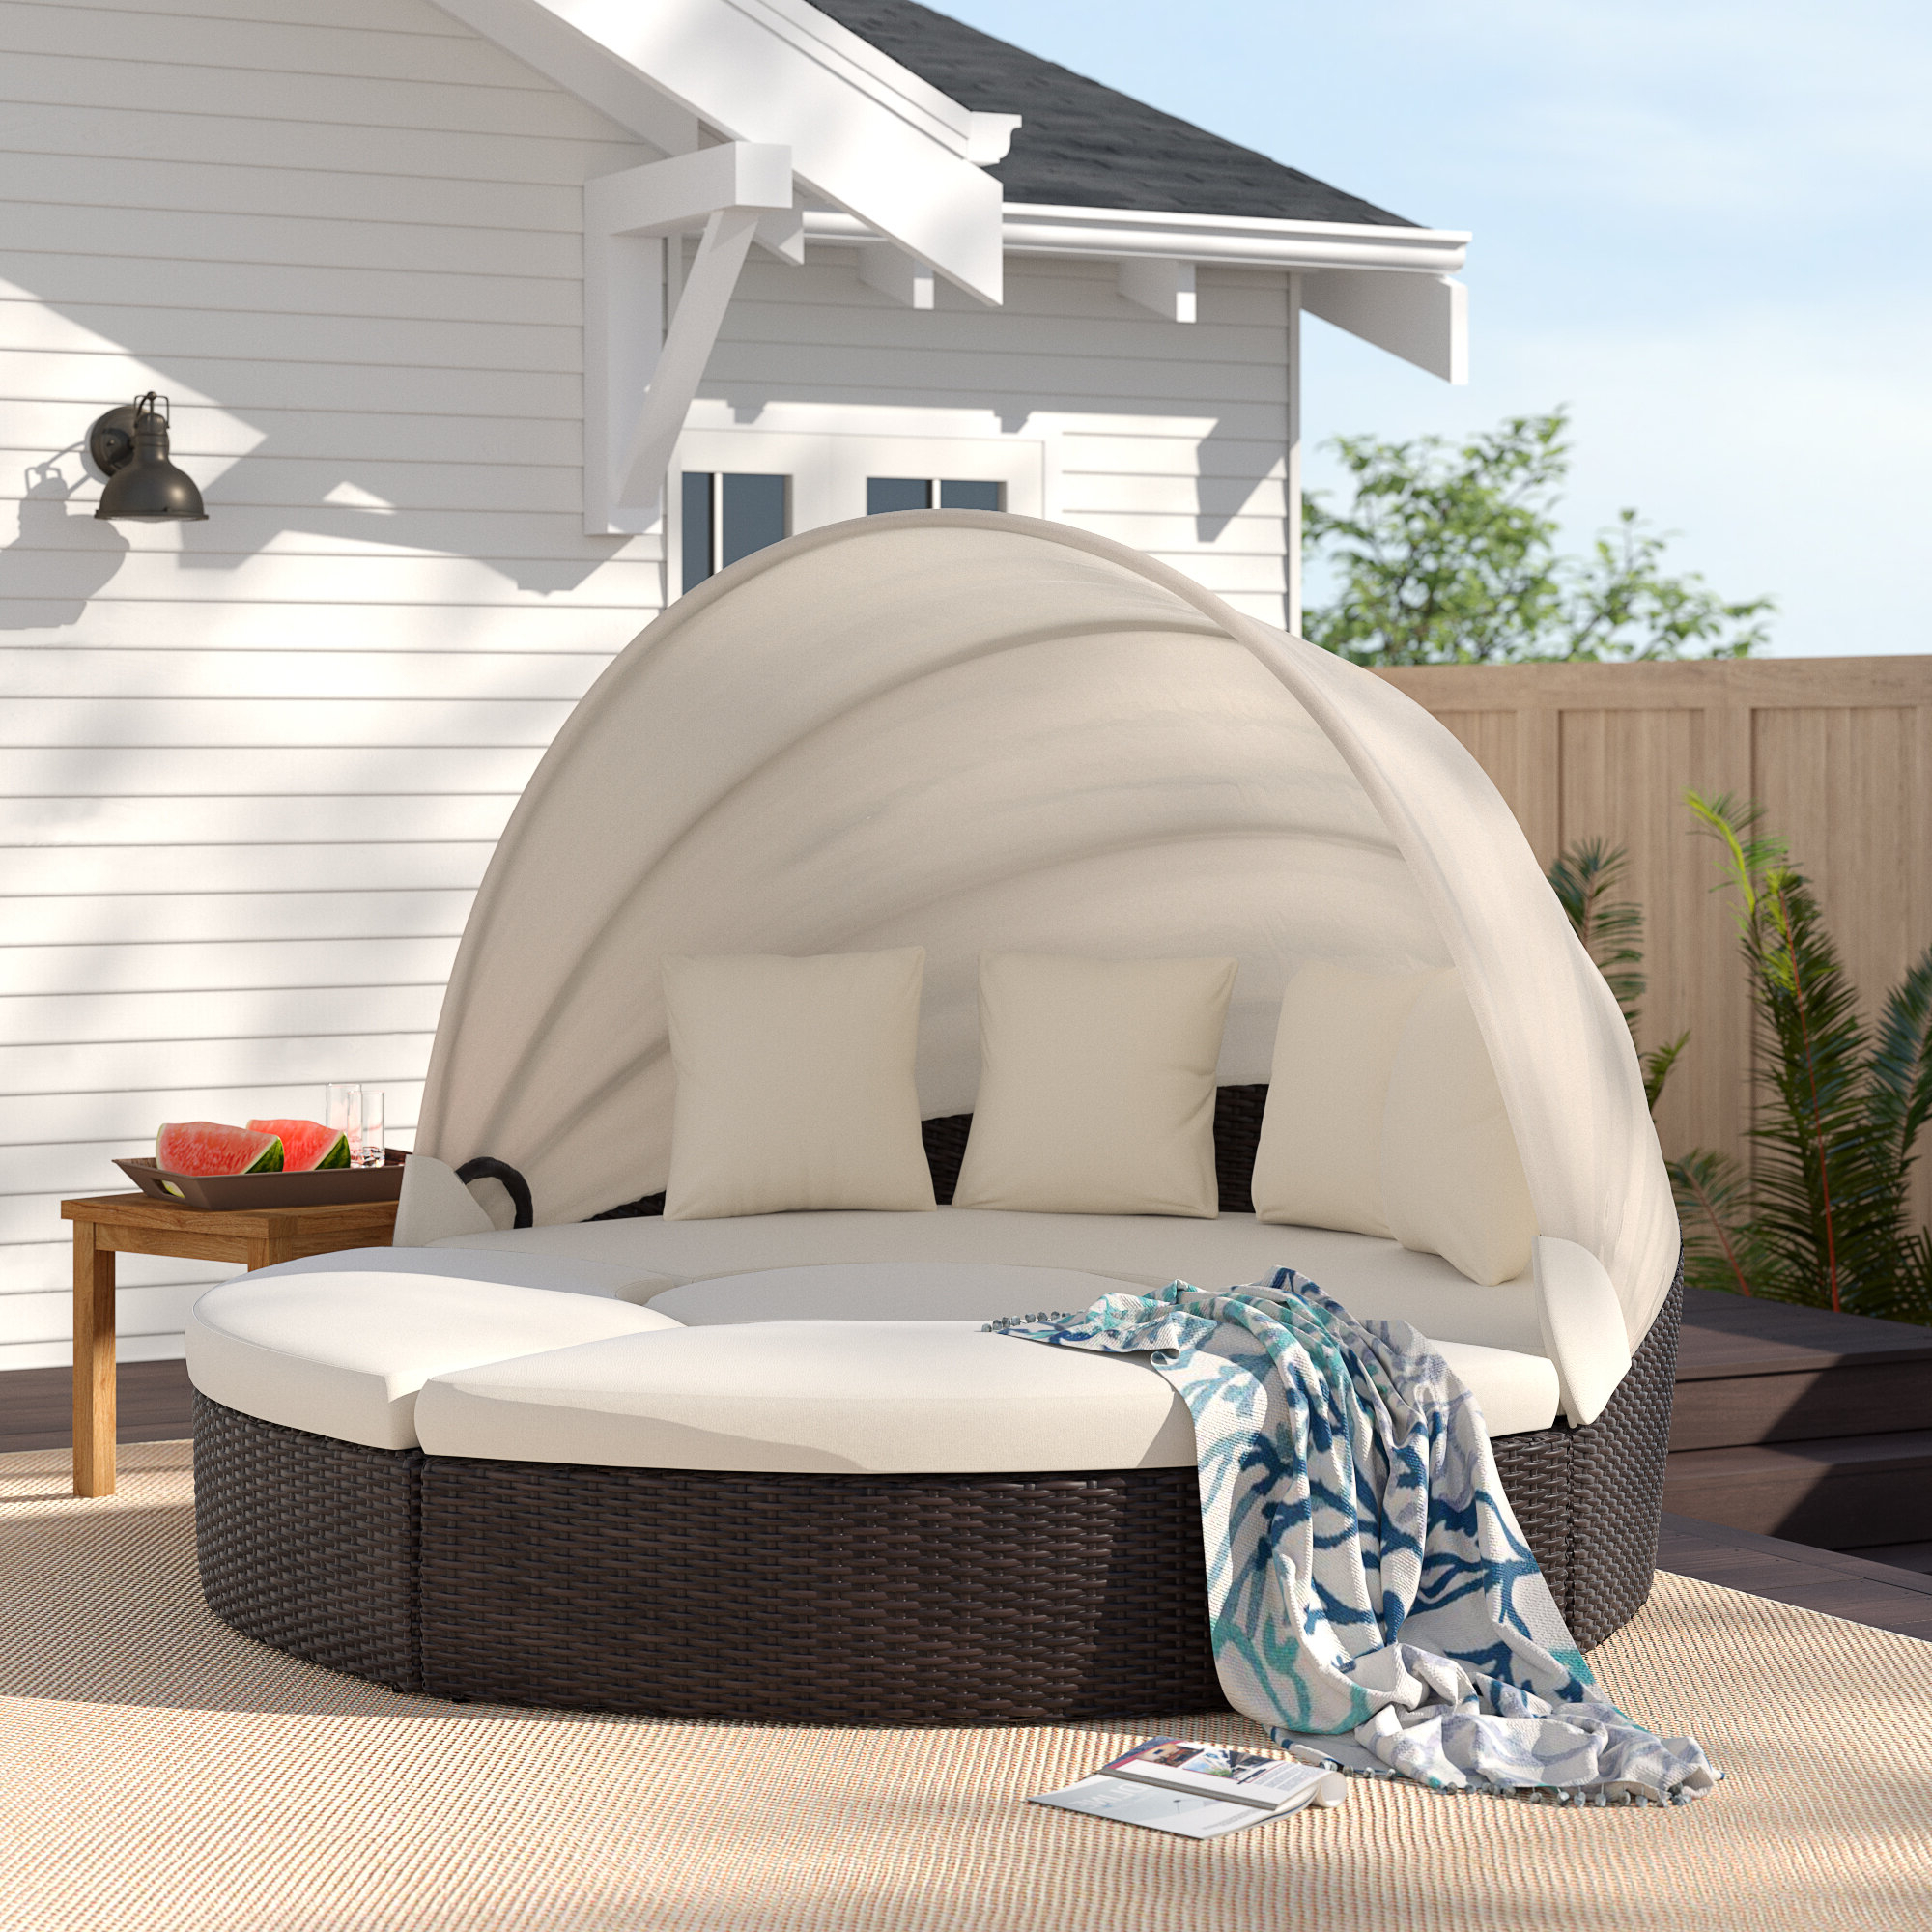 Most Popular Carrasco Patio Daybeds With Cushions In Antigua Patio Daybed With Cushions (View 10 of 20)